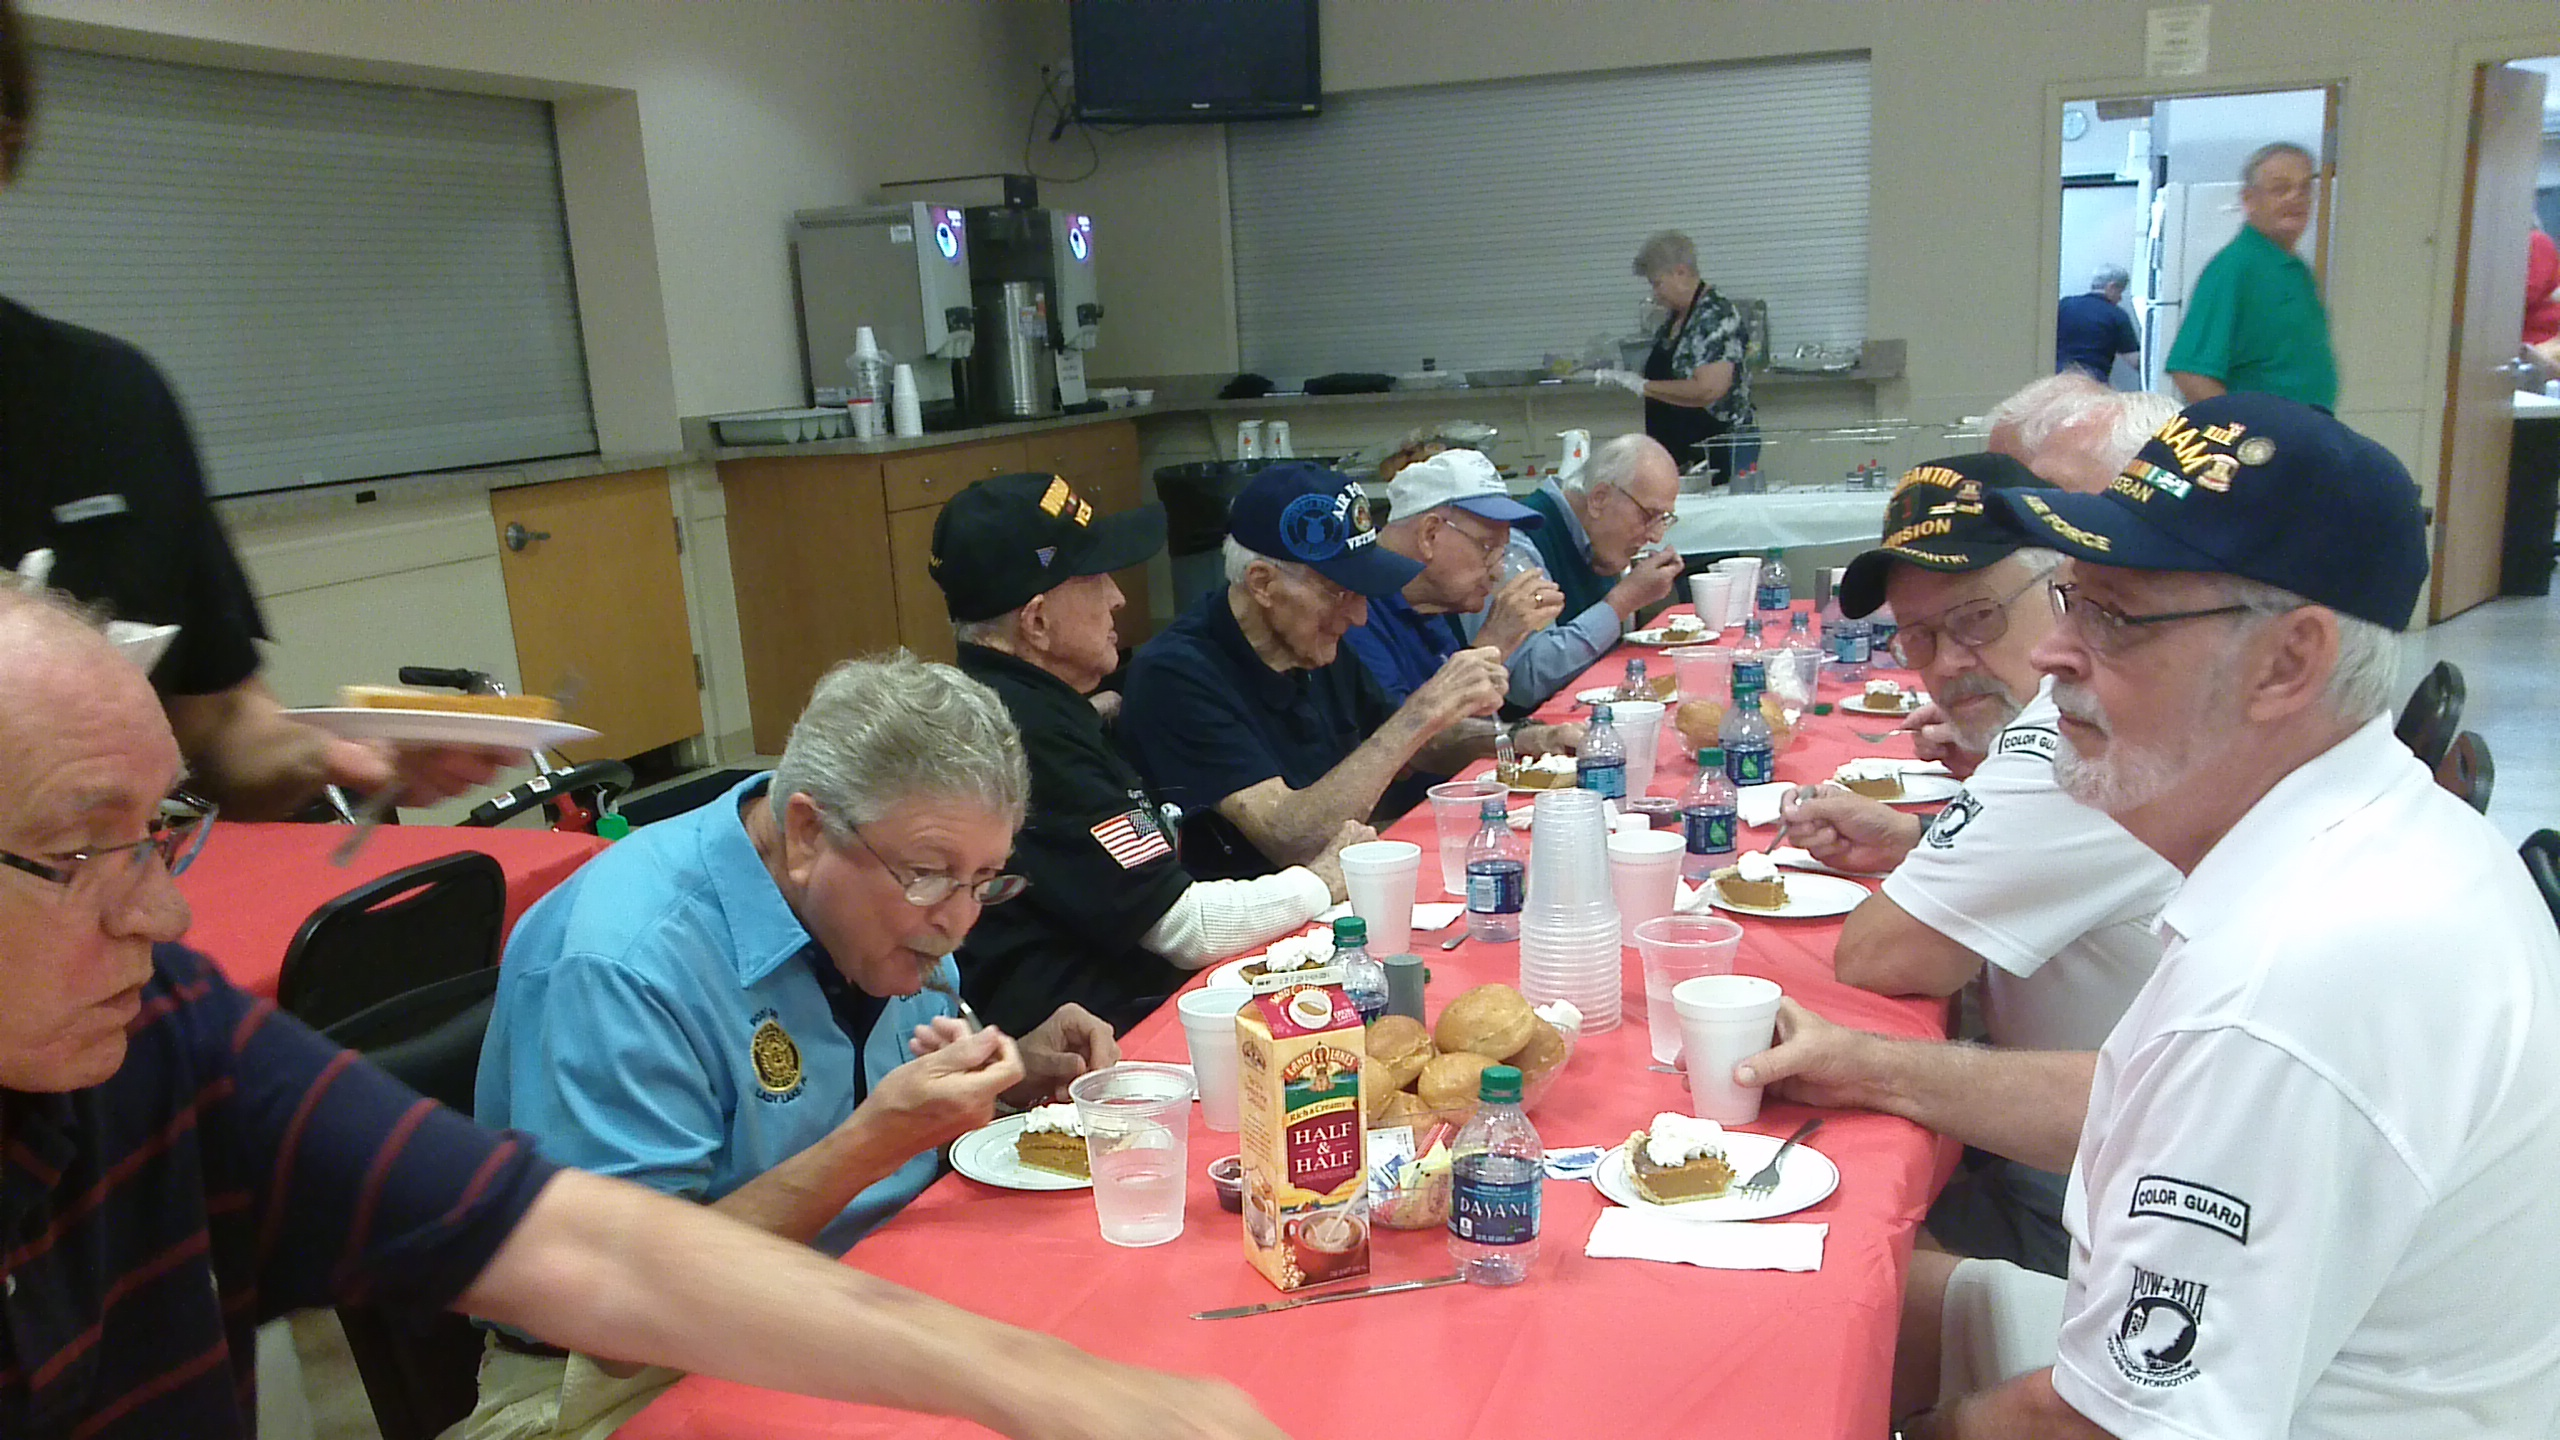 http://www.florida-legion.com/ww2lunch2.JPG